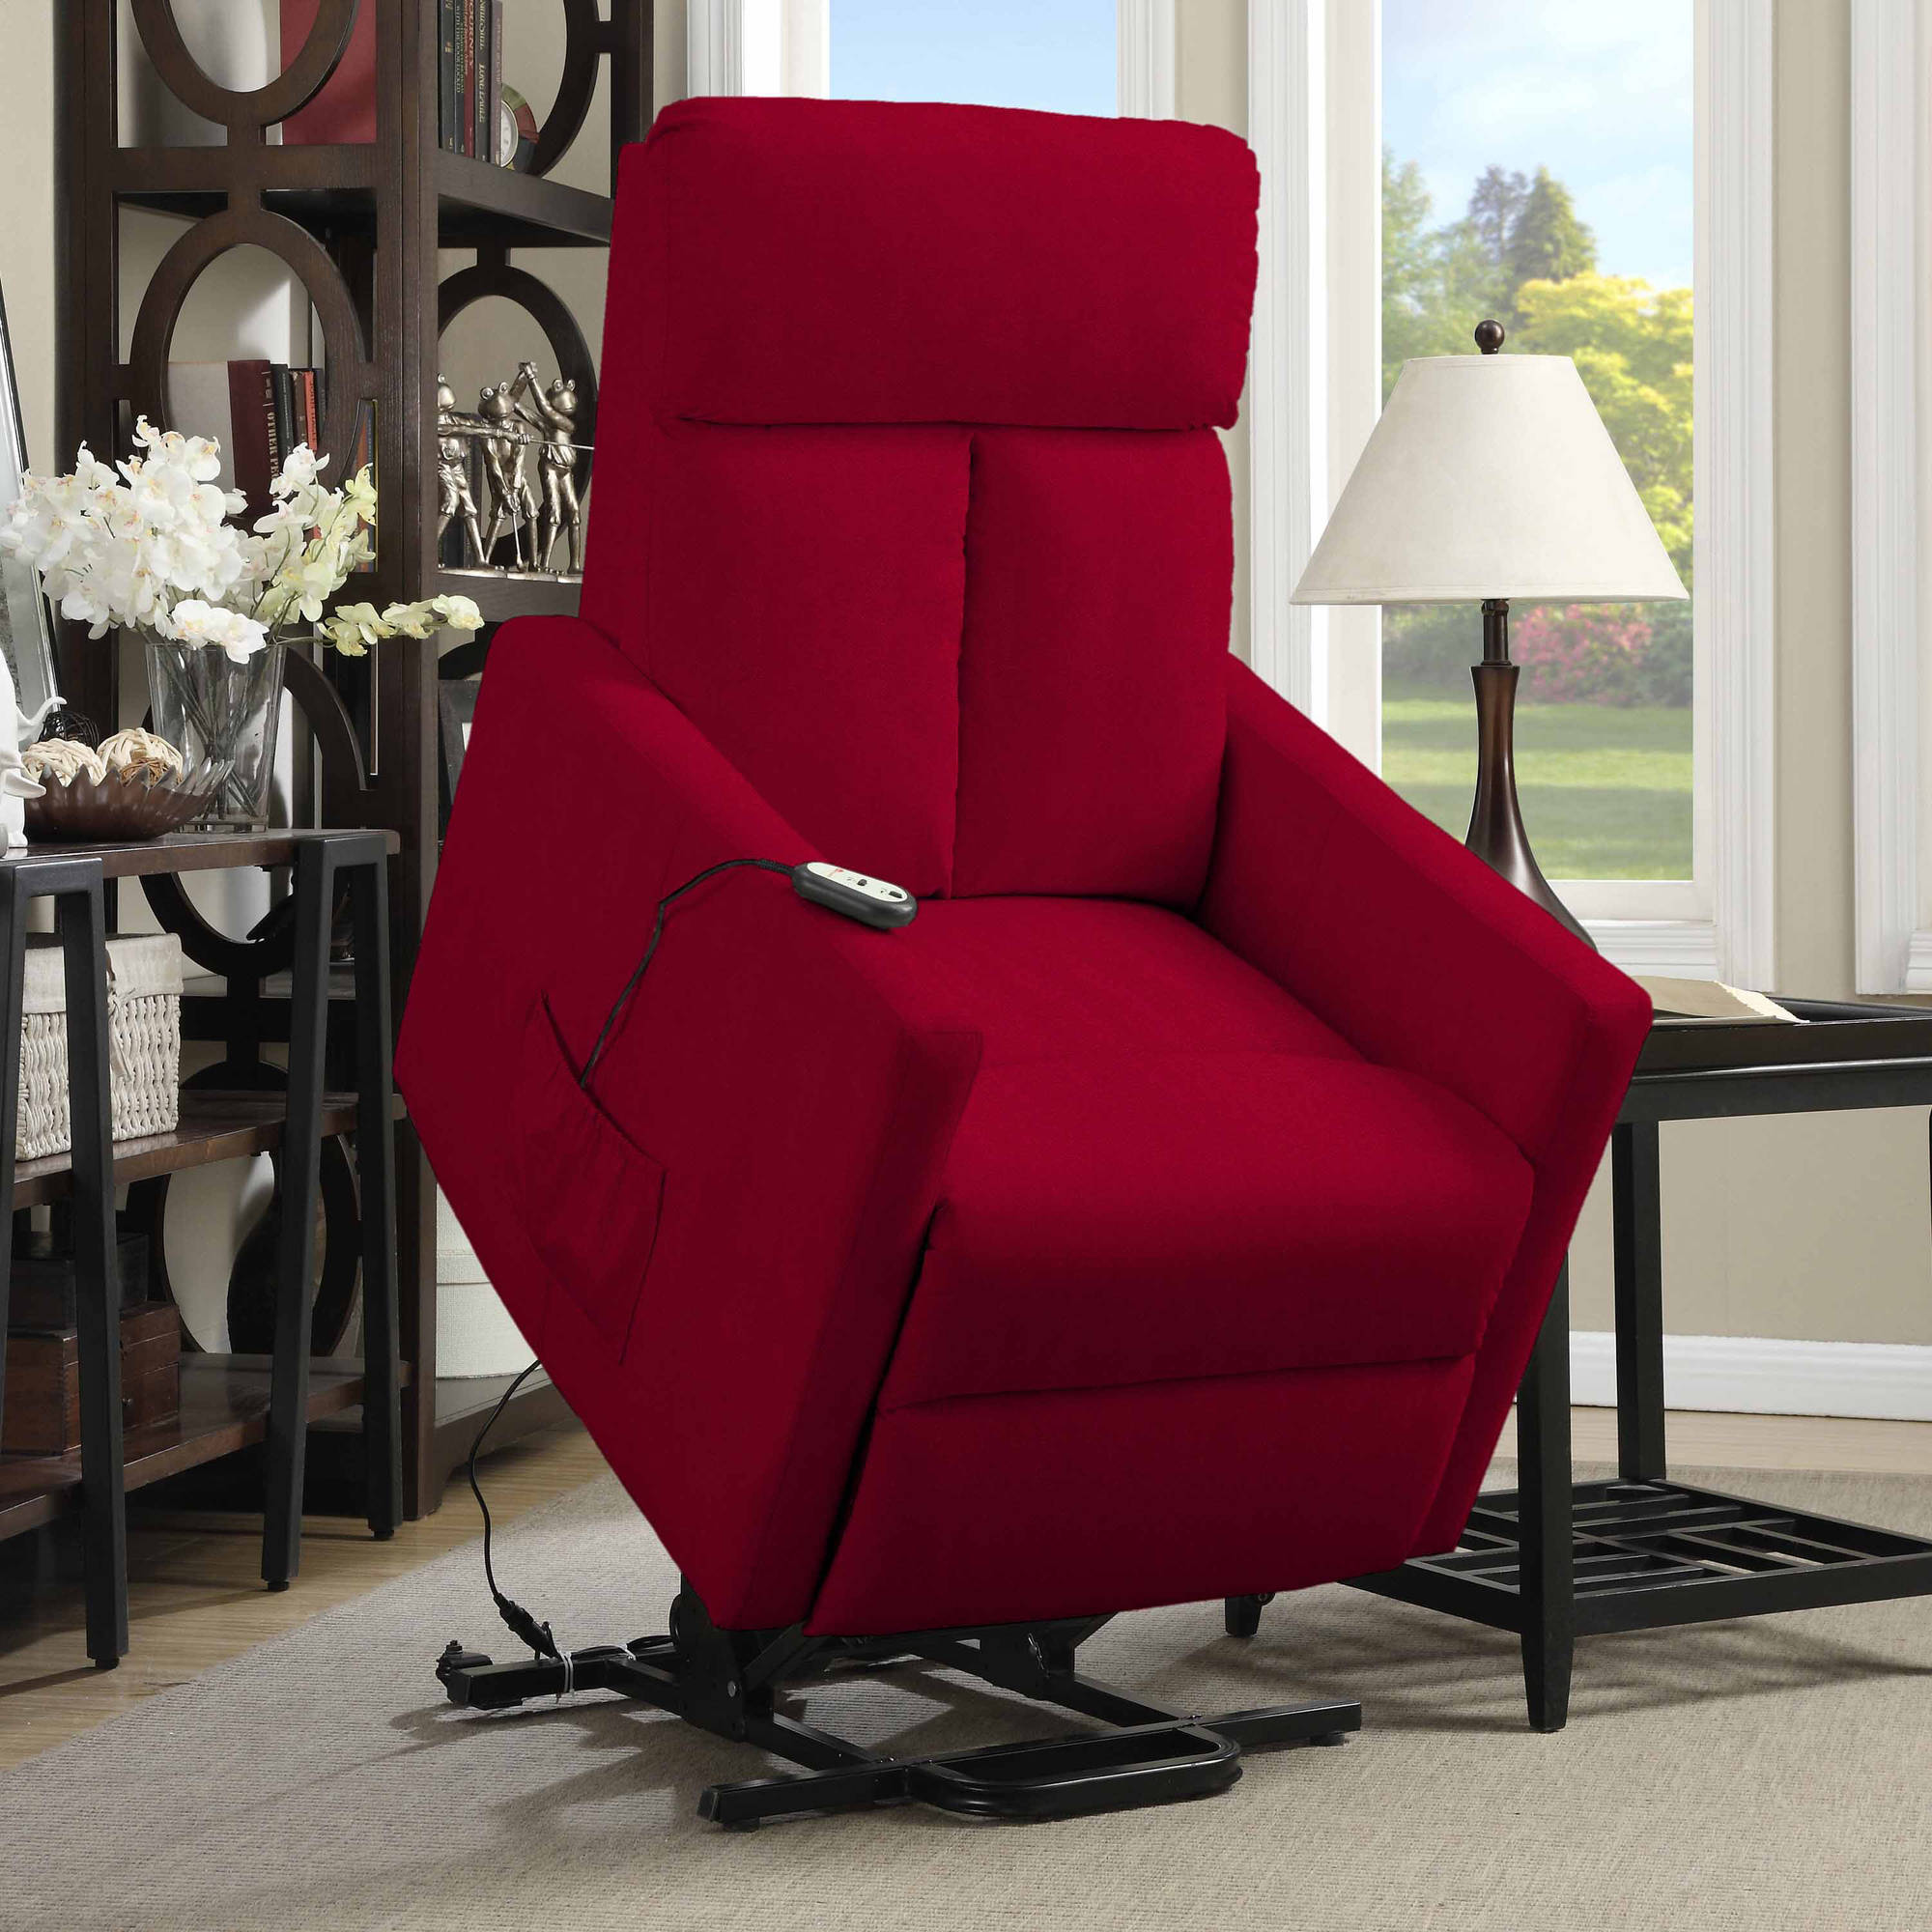 ProLounger Power Lift Chair Microfiber Recliner T Back Multiple